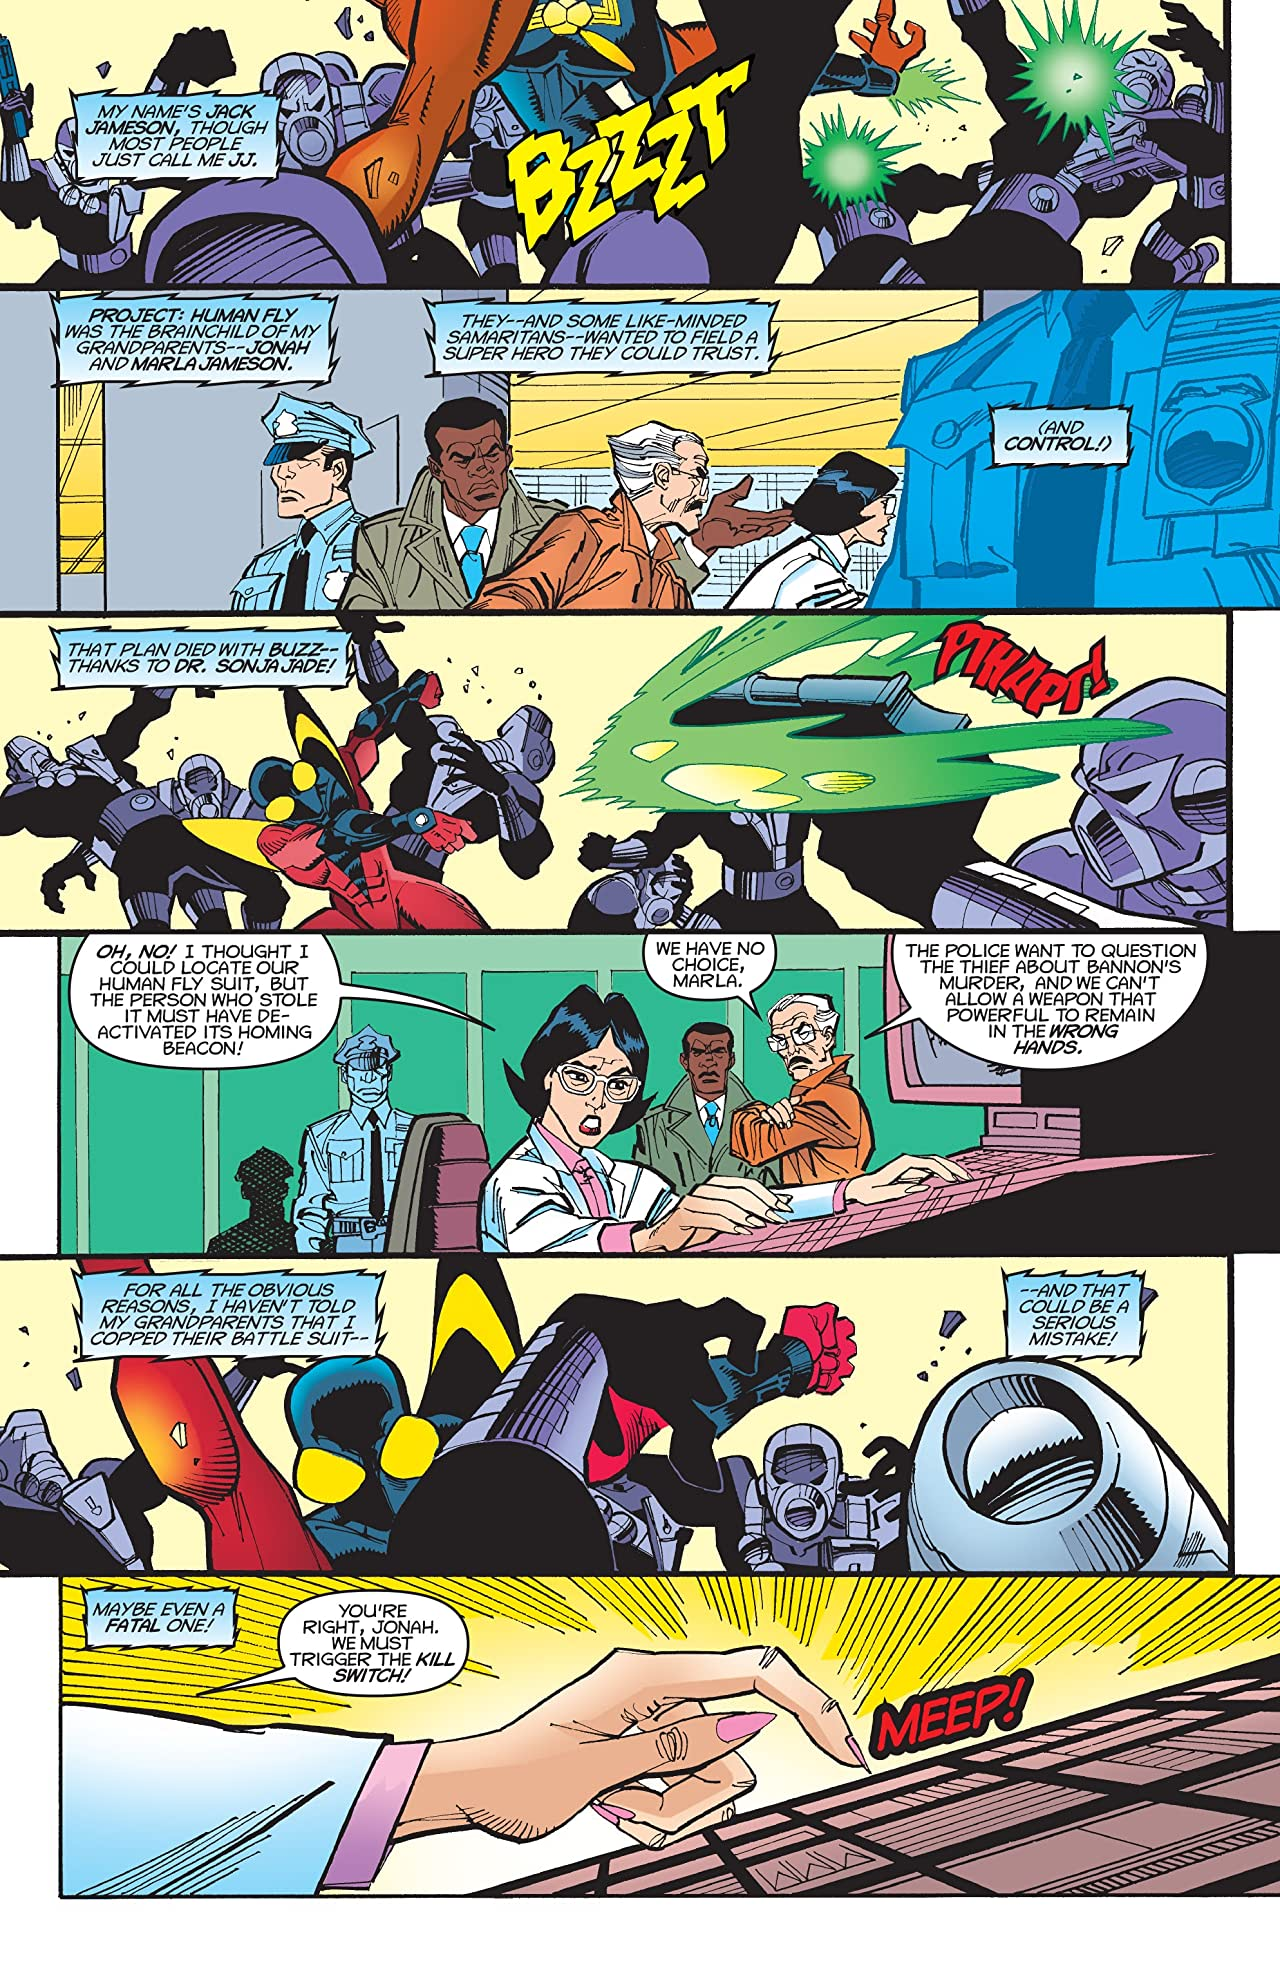 The Buzz (2000) #2 (of 3)